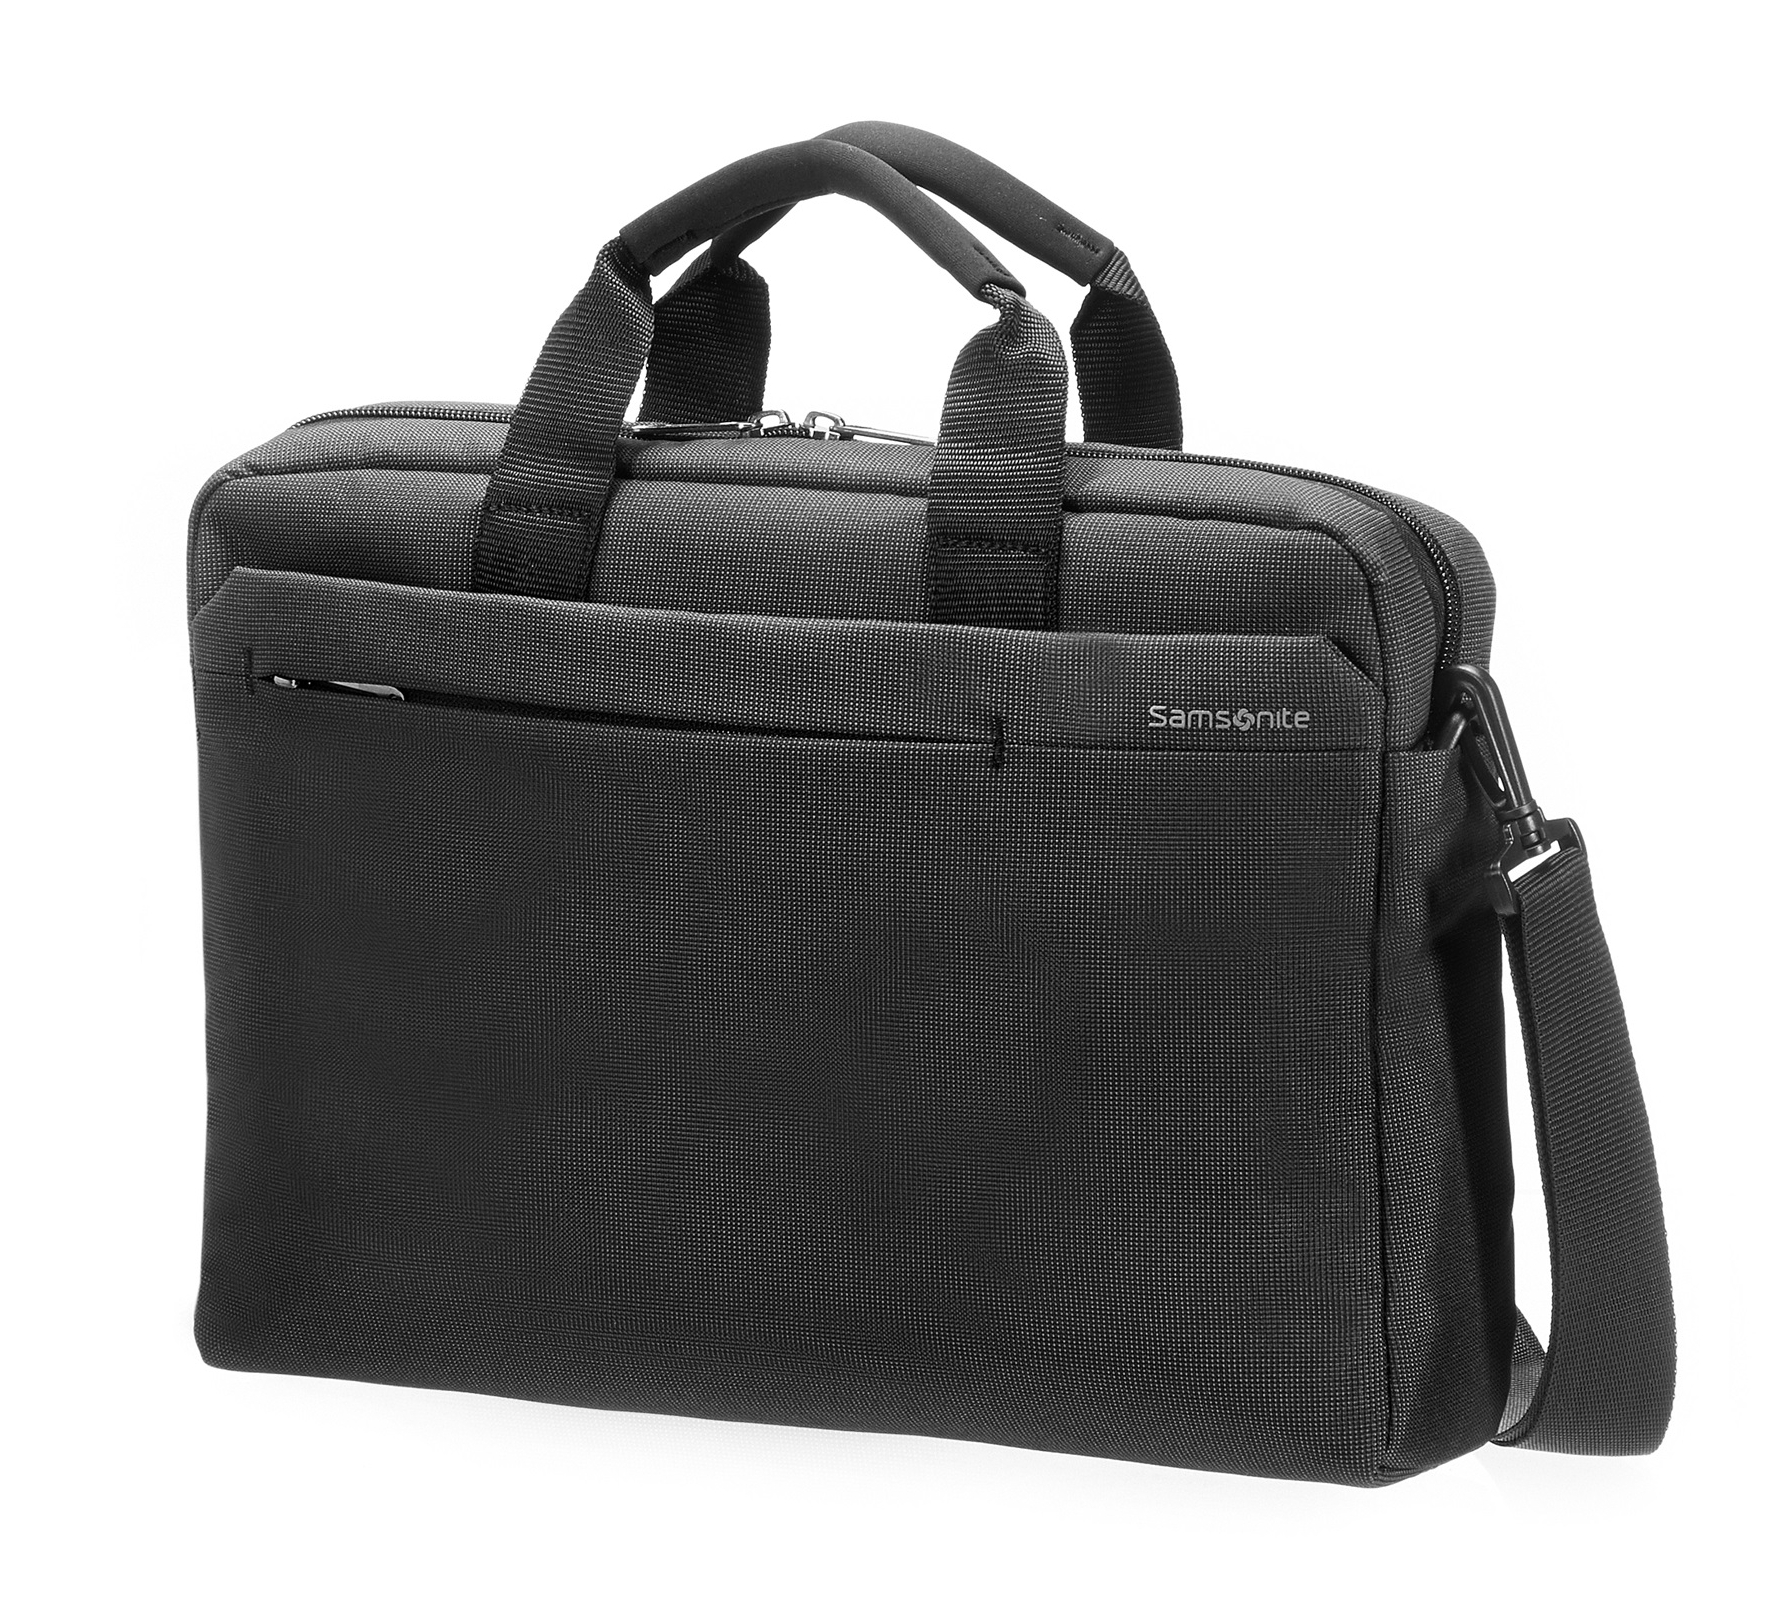 SAMSONITE - BORSE NOTEBOOK - 5414847367649